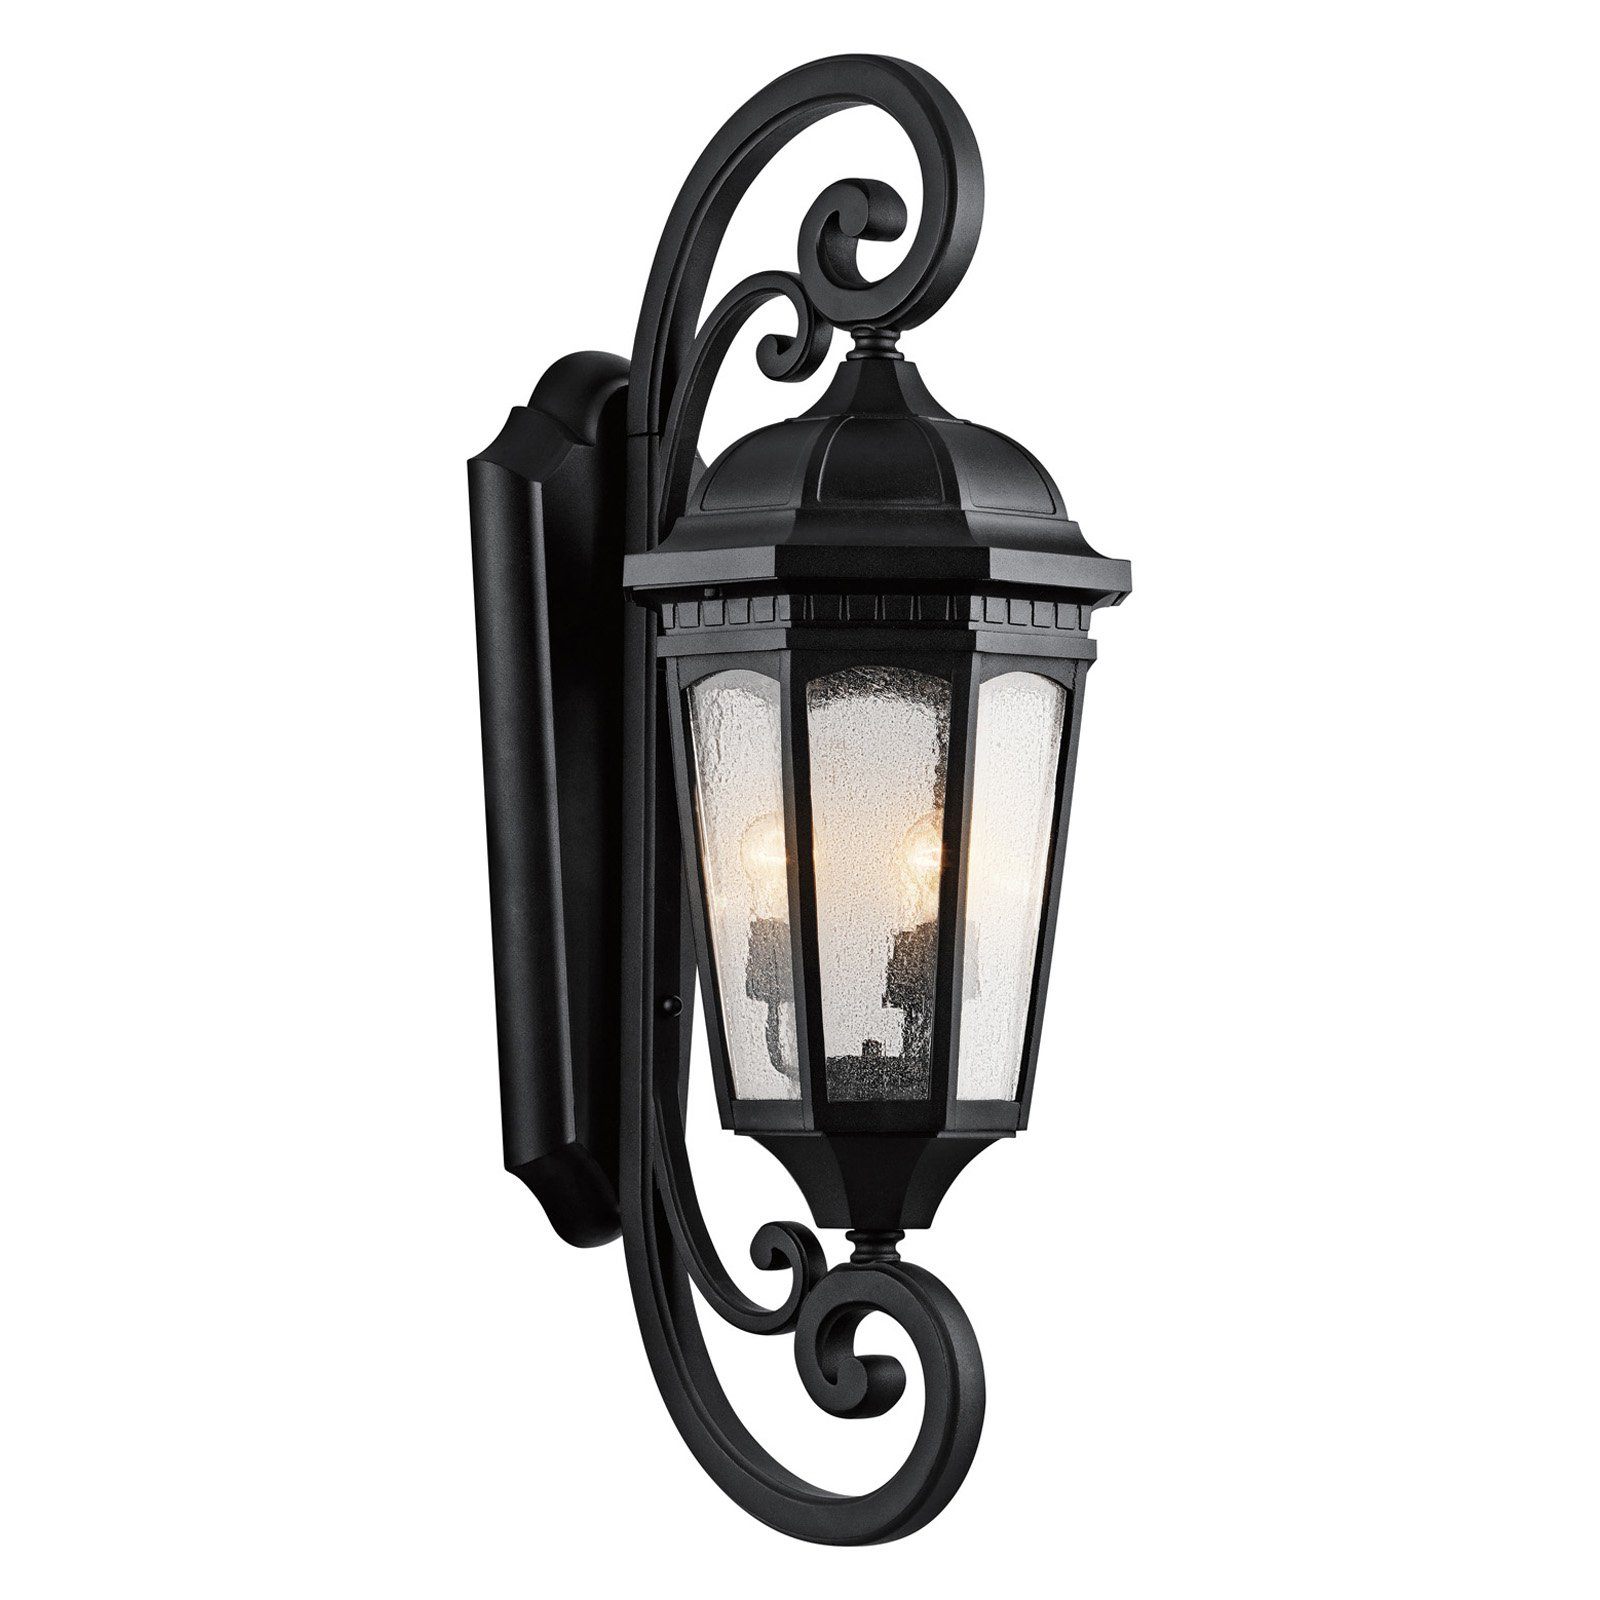 Kichler Courtyard 9060 Outdoor Wall Sconce